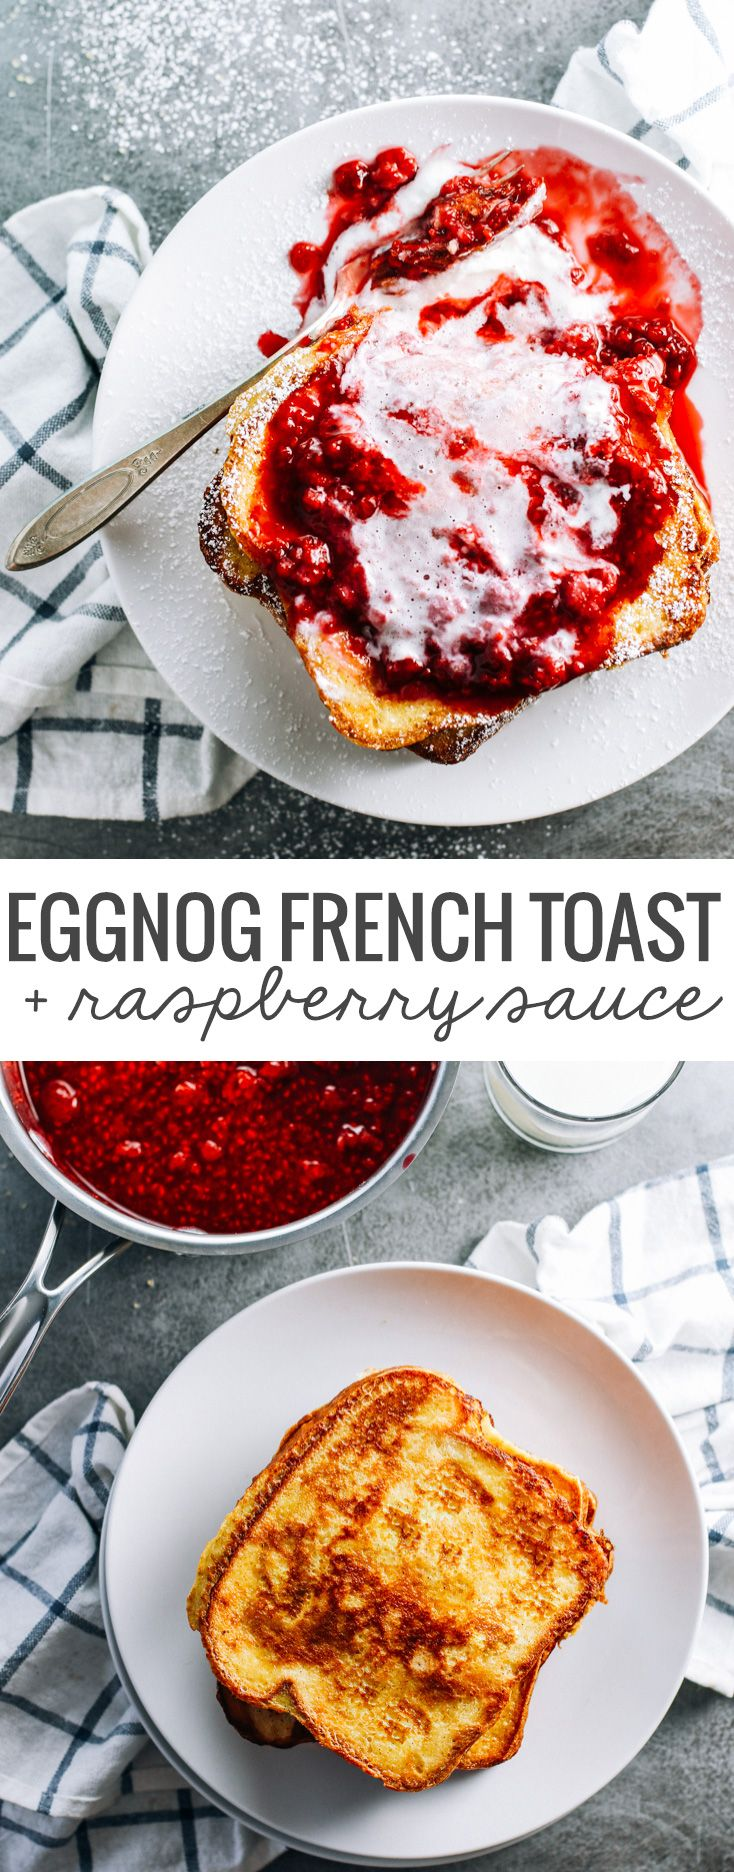 This Eggnog French Toast with Raspberry Sauce is absolutely stunning and takes just 20 minutes to make. Win!